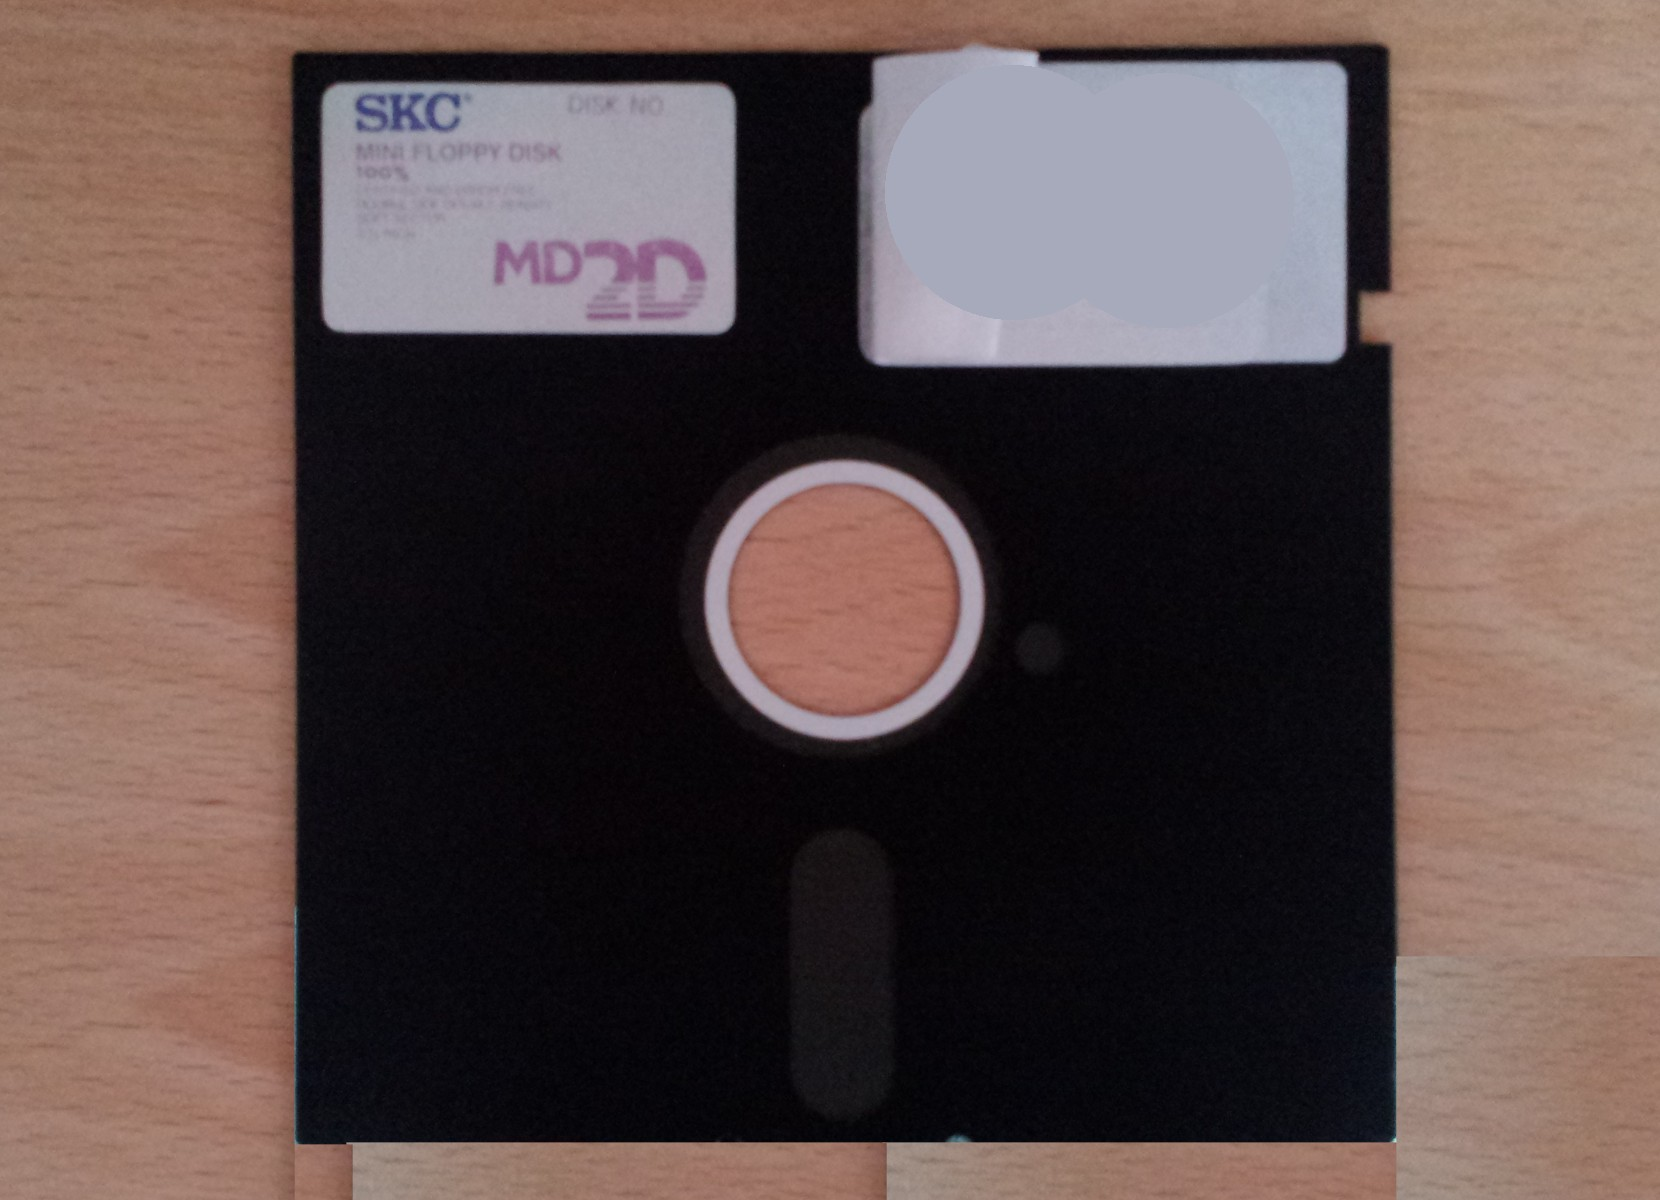 A 5.25 floppy disk which was sent to us to retrieve the data. The client was unsure if the disk still worked but simply wanted the files emailing back to them. This disk was a mini Floppy disk although by today's standards it is very large for the compared to the amount of data it holds! It was designated MD2D meaning low density 360kb.